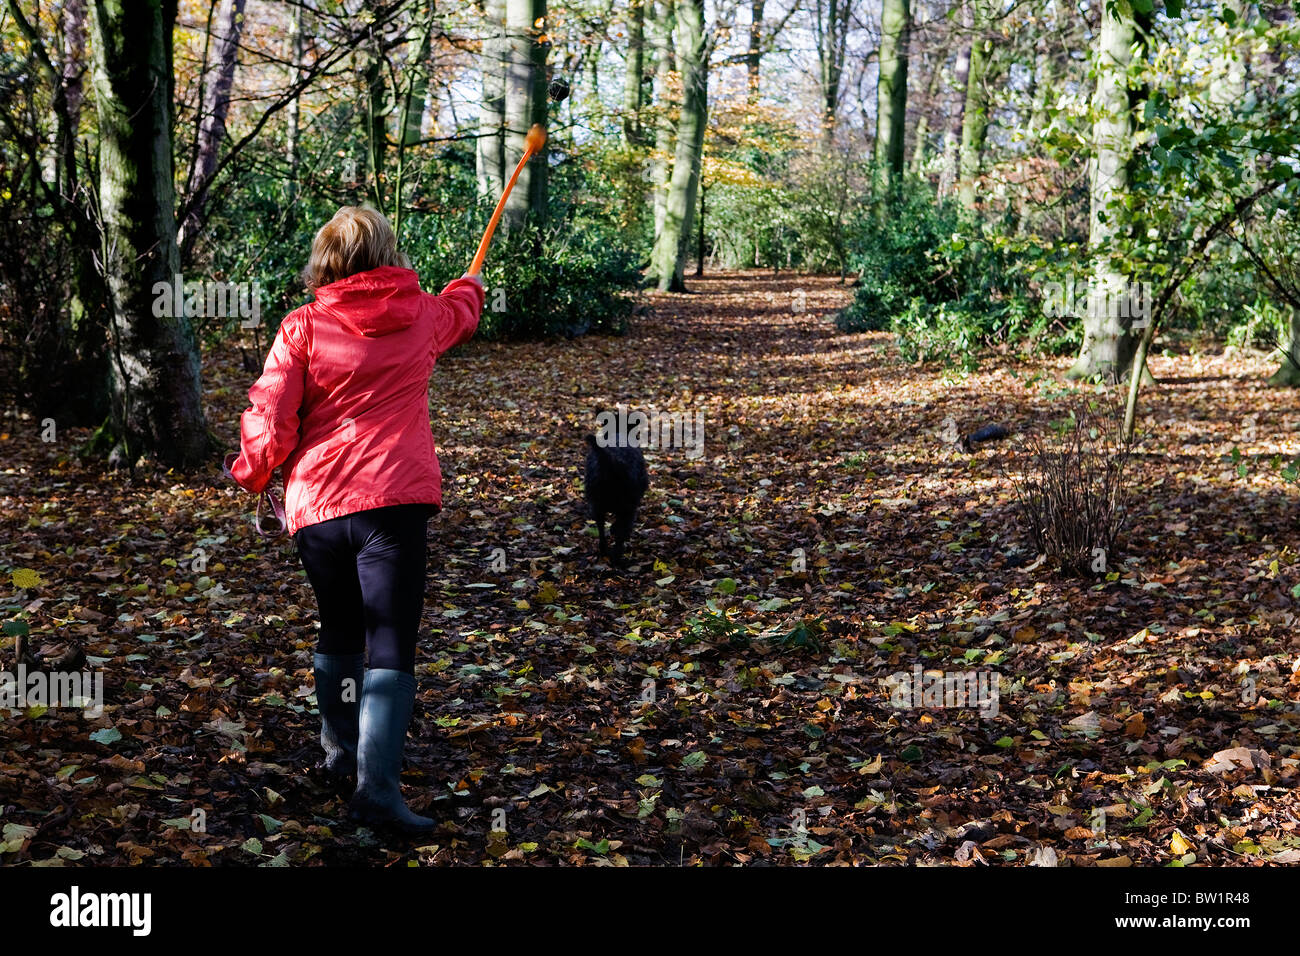 Lady in red coat uses a flinger to throw a ball for her Labradoodle dog to chase in a sunny 'bluebell wood' - Stock Image